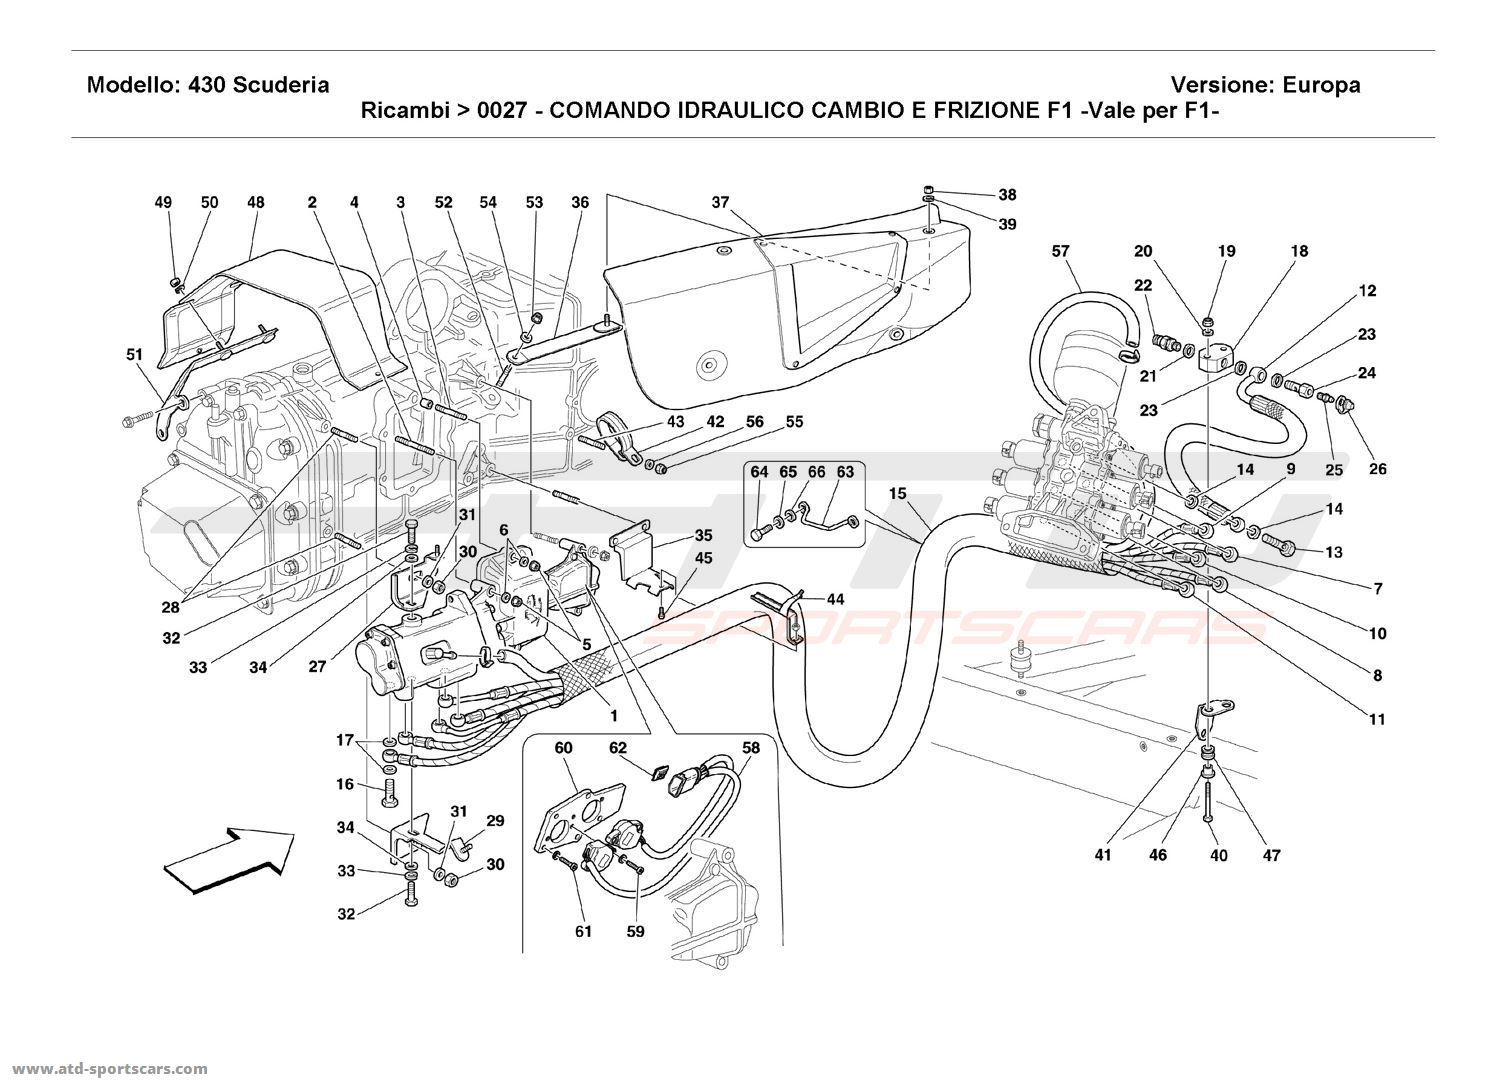 F1 CLUTCH AND GEARBOX HYDRAULIC CONTROL